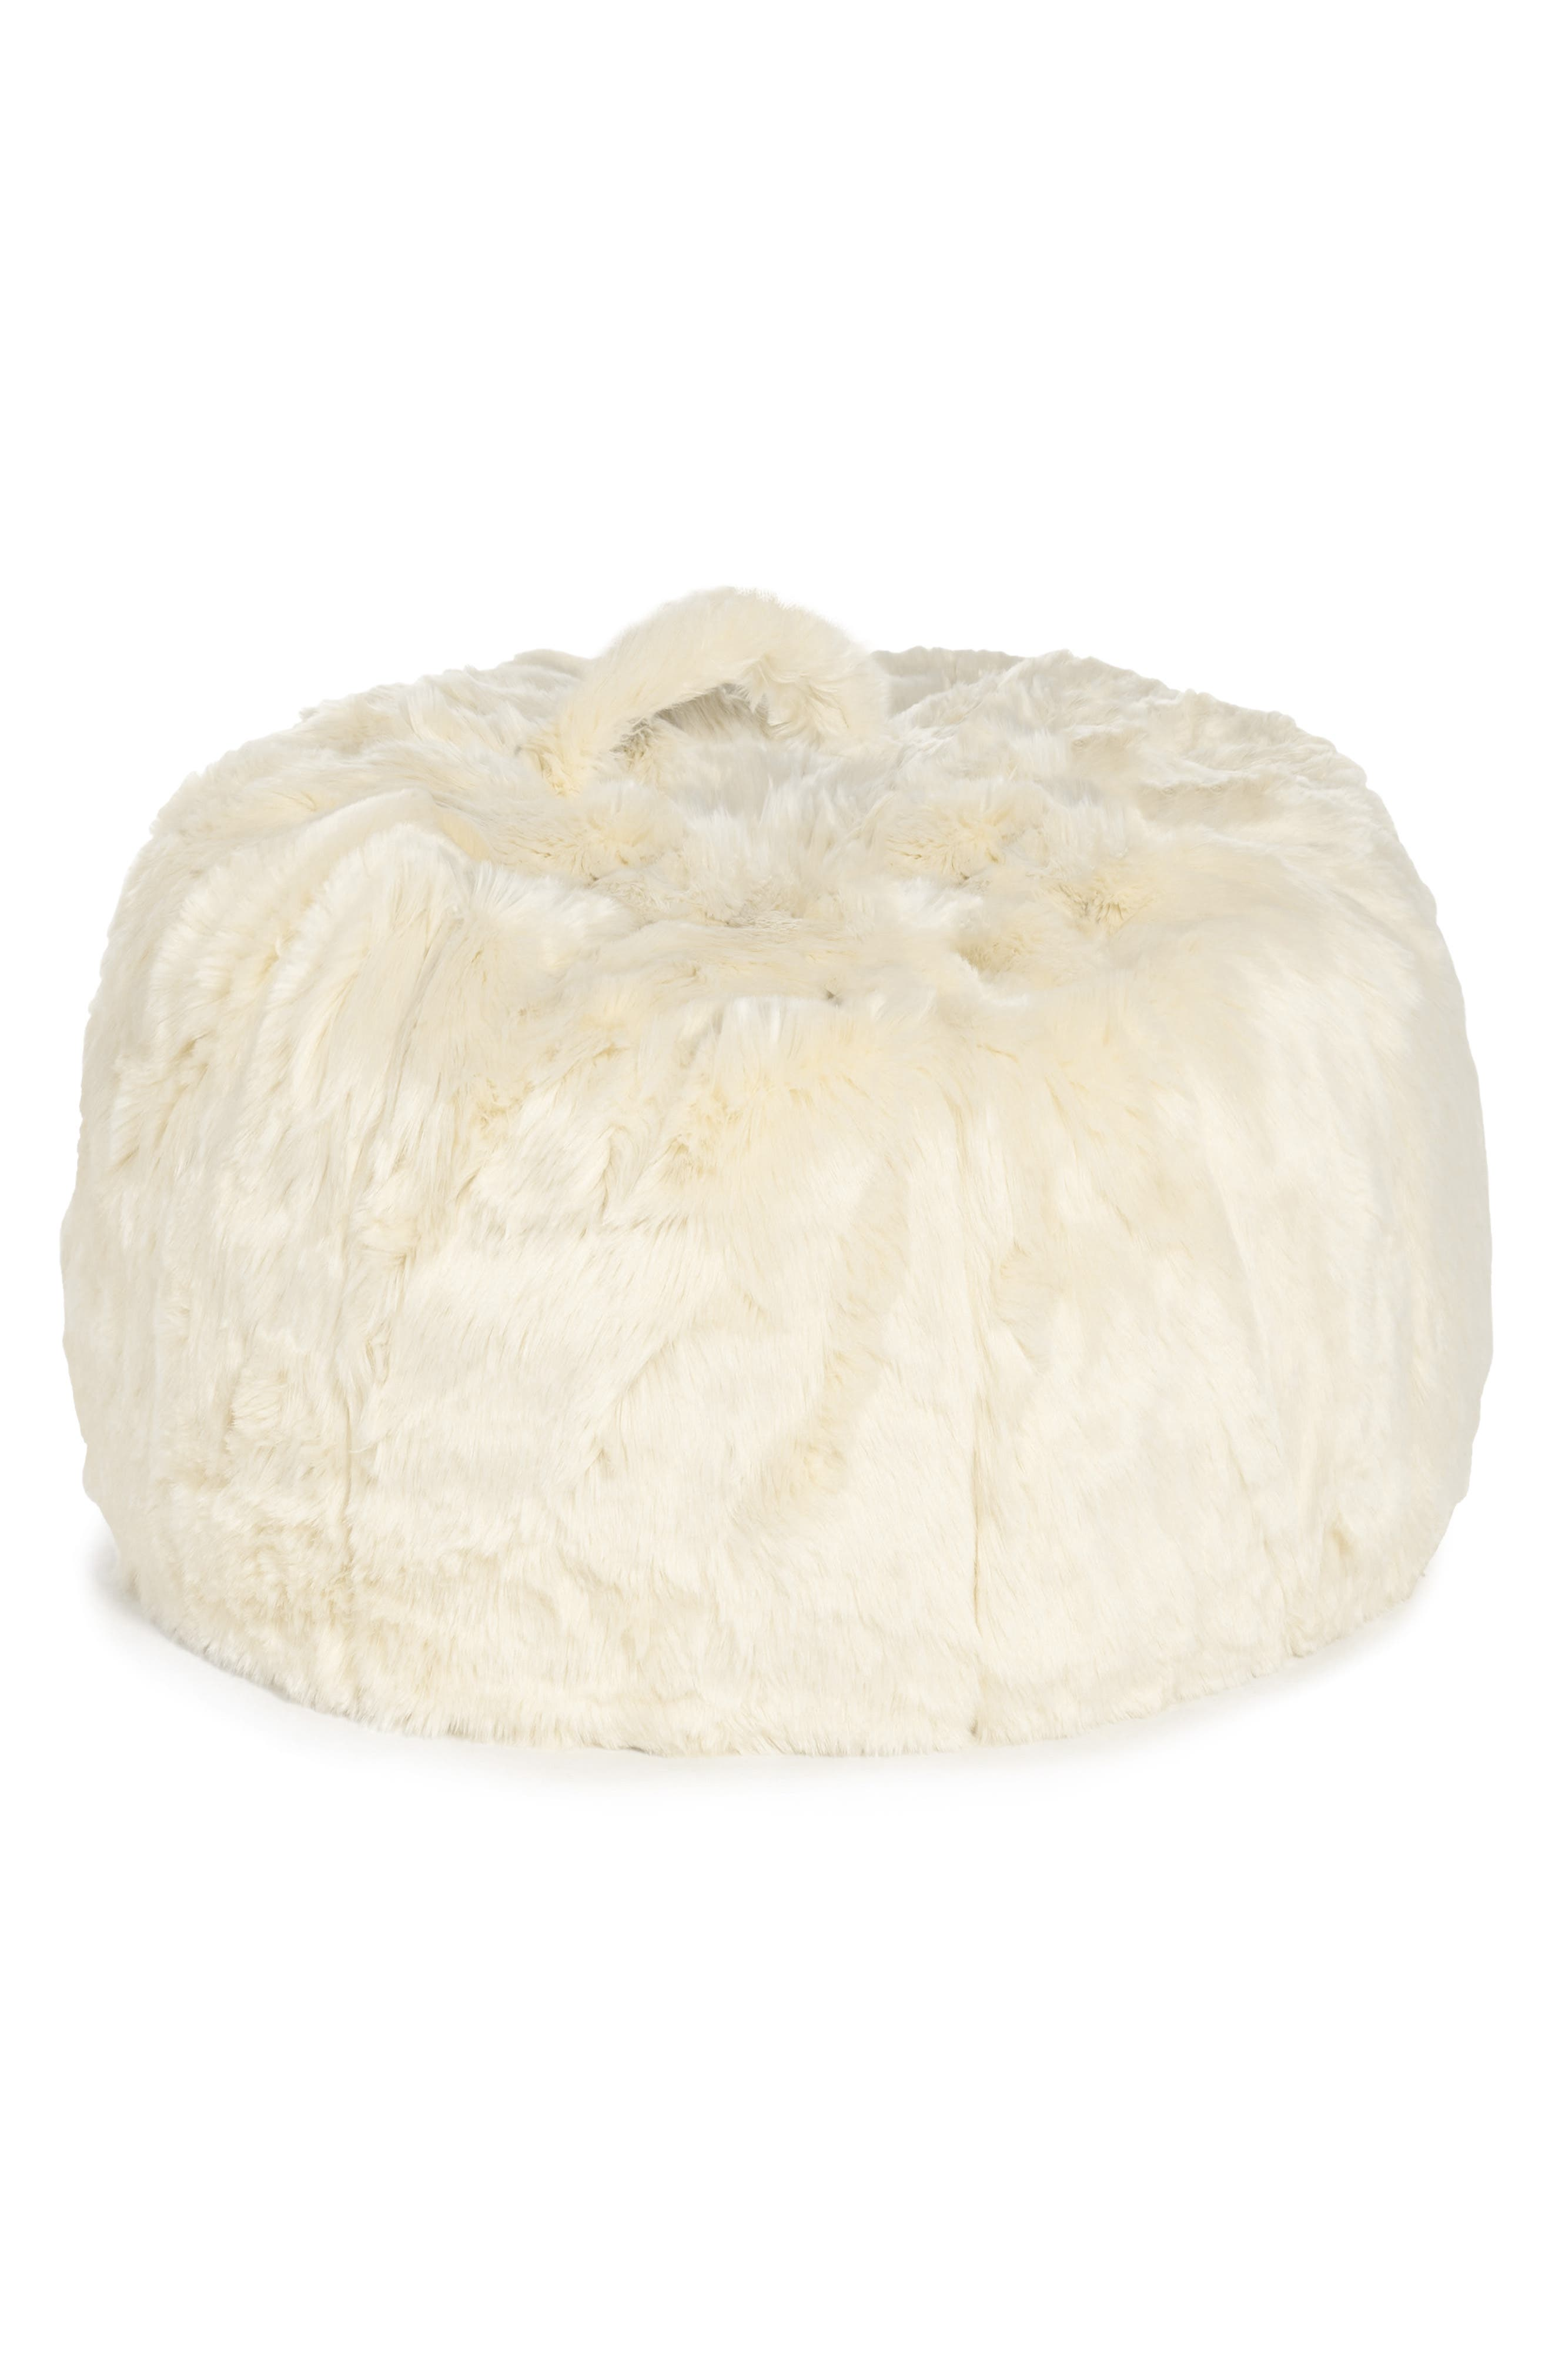 NORDSTROM AT HOME, Cuddle-Up Faux Fur Beanbag Chair, Main thumbnail 1, color, IVORY